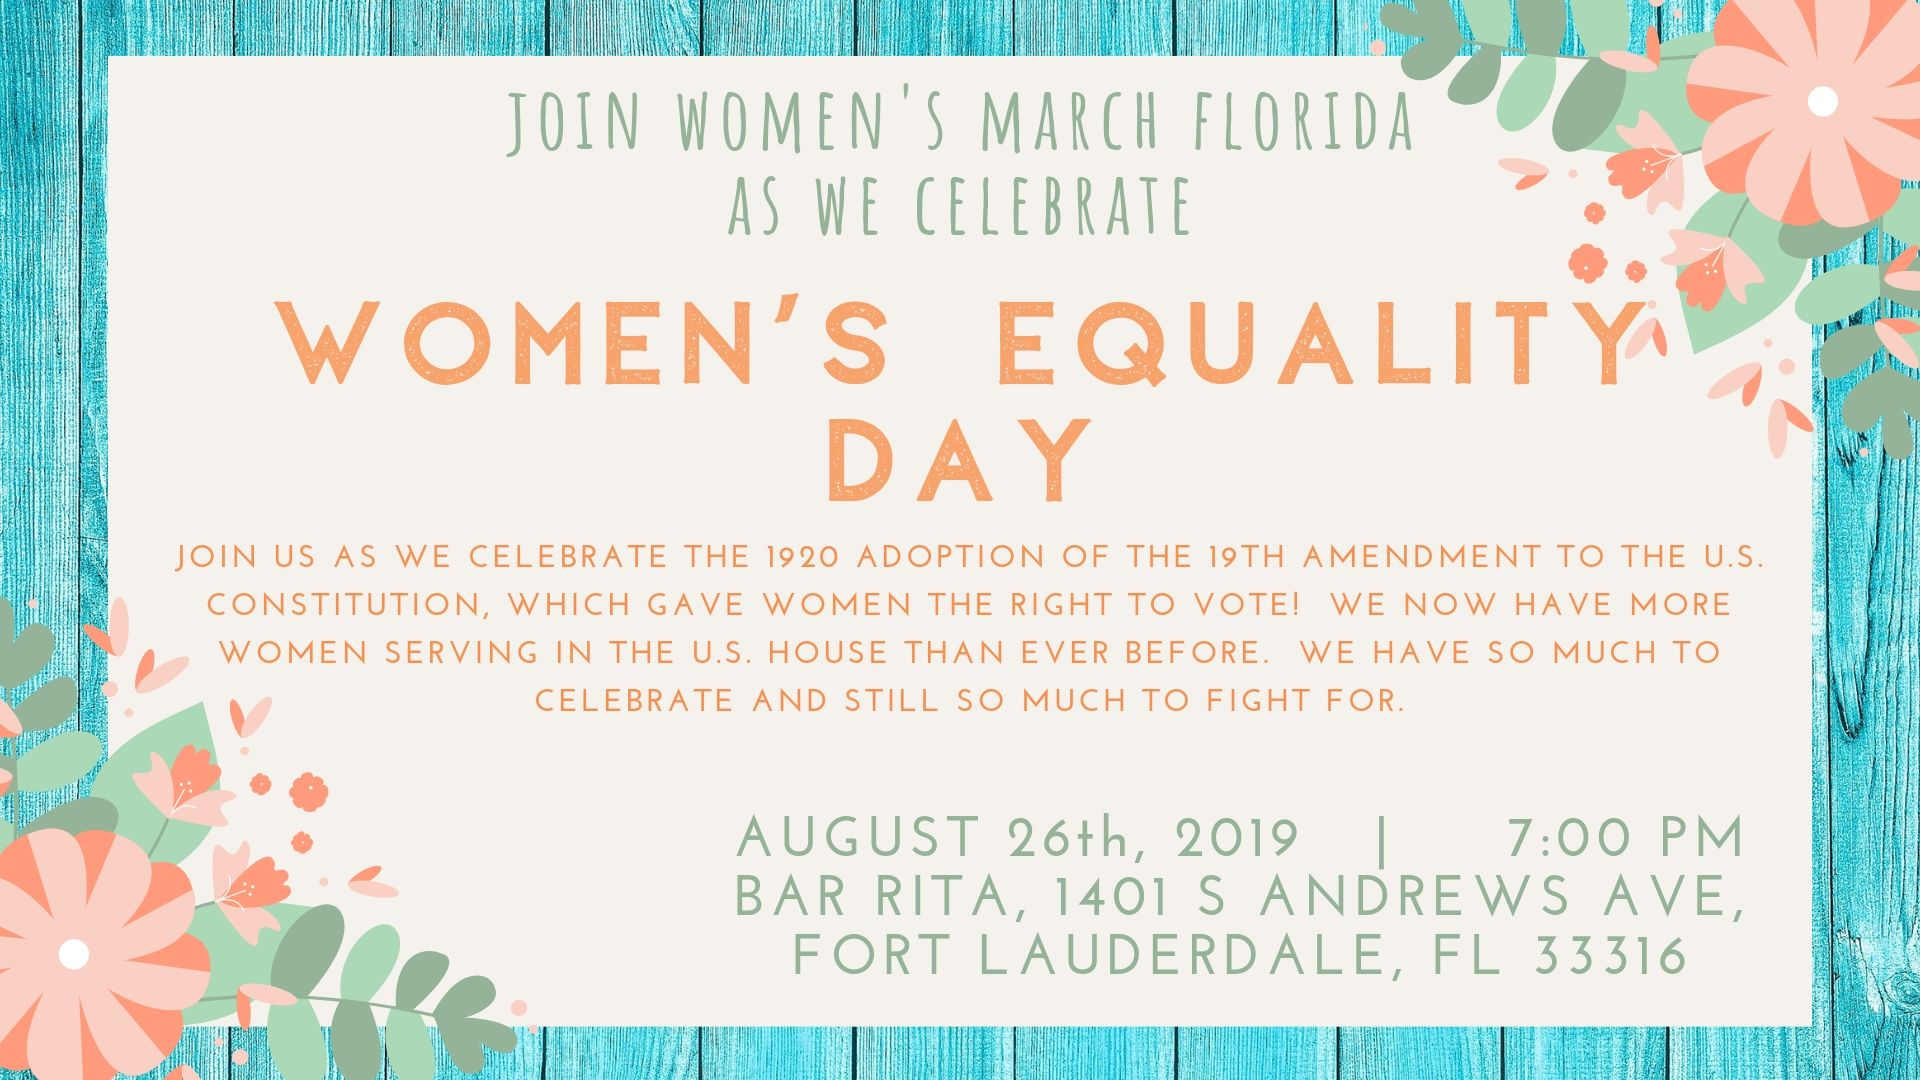 8-26-19: Women's Equality Day Fun-Raiser - We've marched, we've rallied, we've lobbied, and we're ready for 2020! Join Women's March Florida Chapter's through out the state to celebrate Women's Equality Day so we can hit the ground running for our Session of Action! All funds are being raised to support Women's March Florida and Women's March Broward for our February 2020 Tallahassee Lobby Day.One ticket includes one drink and a button of your choice! We hope to see you there!Community and Business Sponsorship Opportunities available. Contact Hillary Dougherty: hillary@womensmarchfl.org.